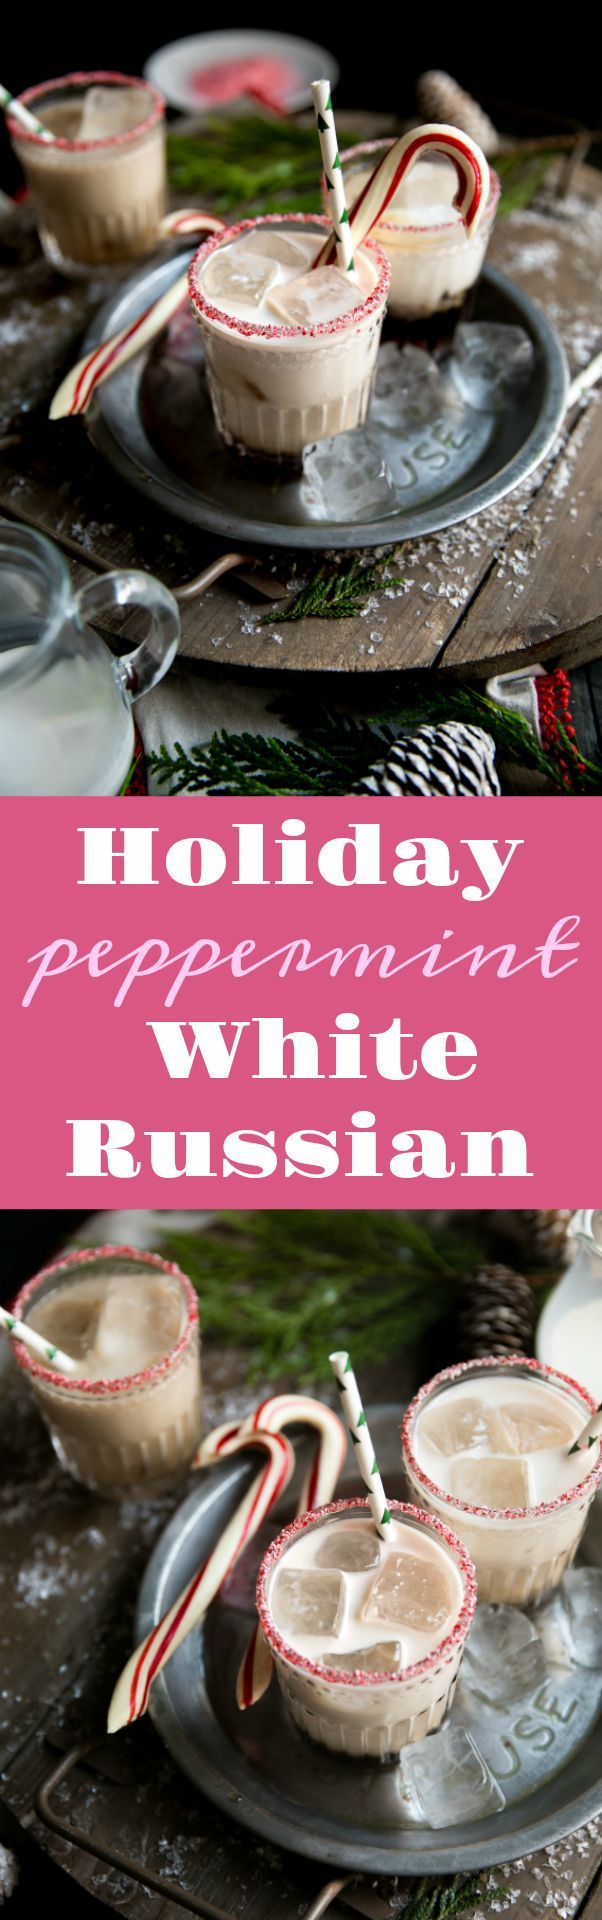 Holiday Peppermint White Russian #cocktail #easyrecipe #whiterussian #vodka #kahlua #peppermint #christmas #alcohol